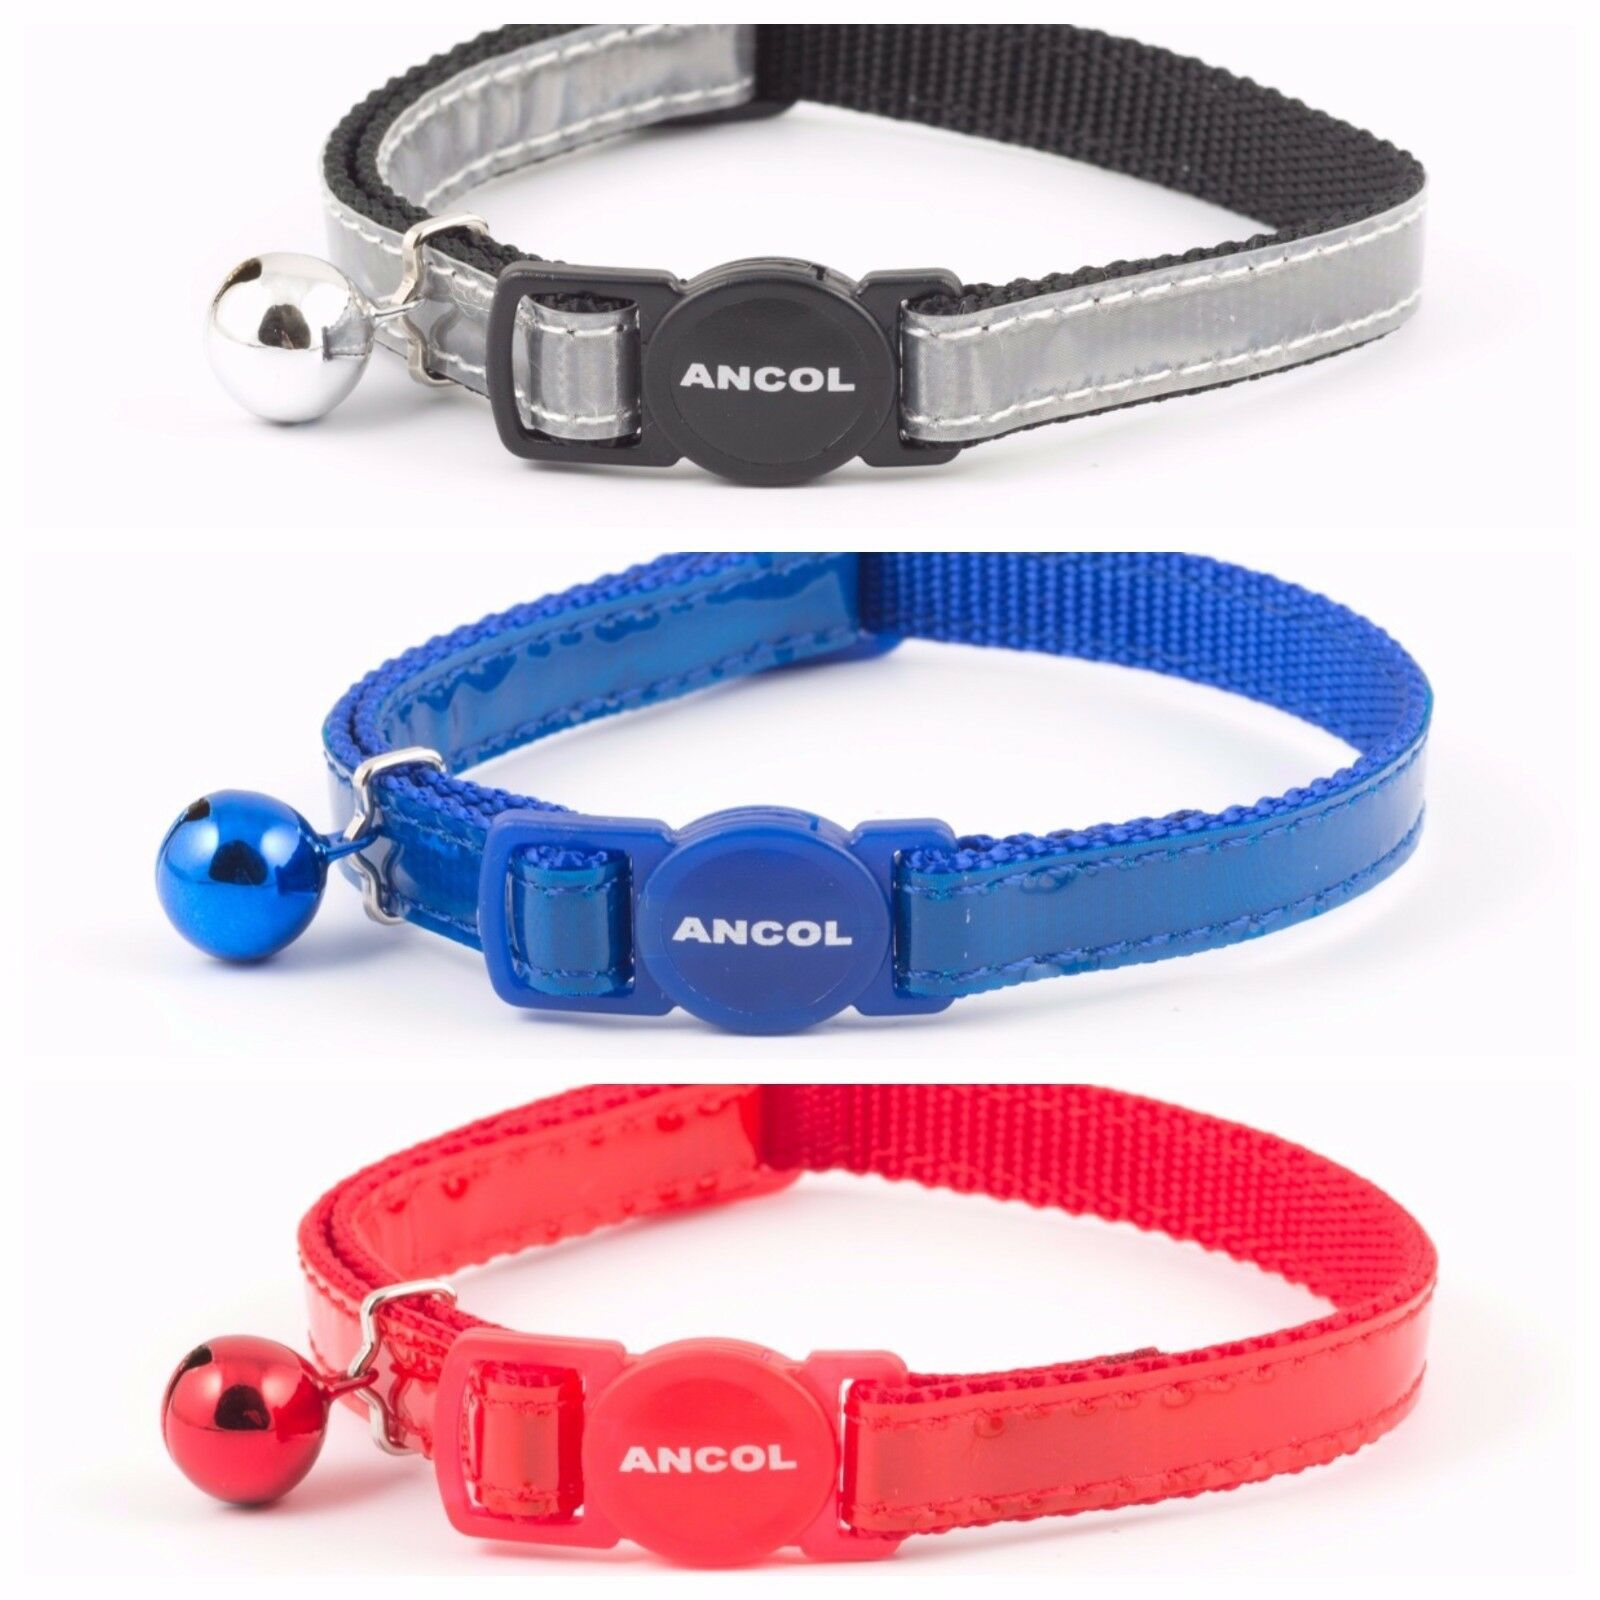 ANCOL GLOSS REFLECTIVE SAFETY RELEASE CAT COLLARS - Single or Multiple Option